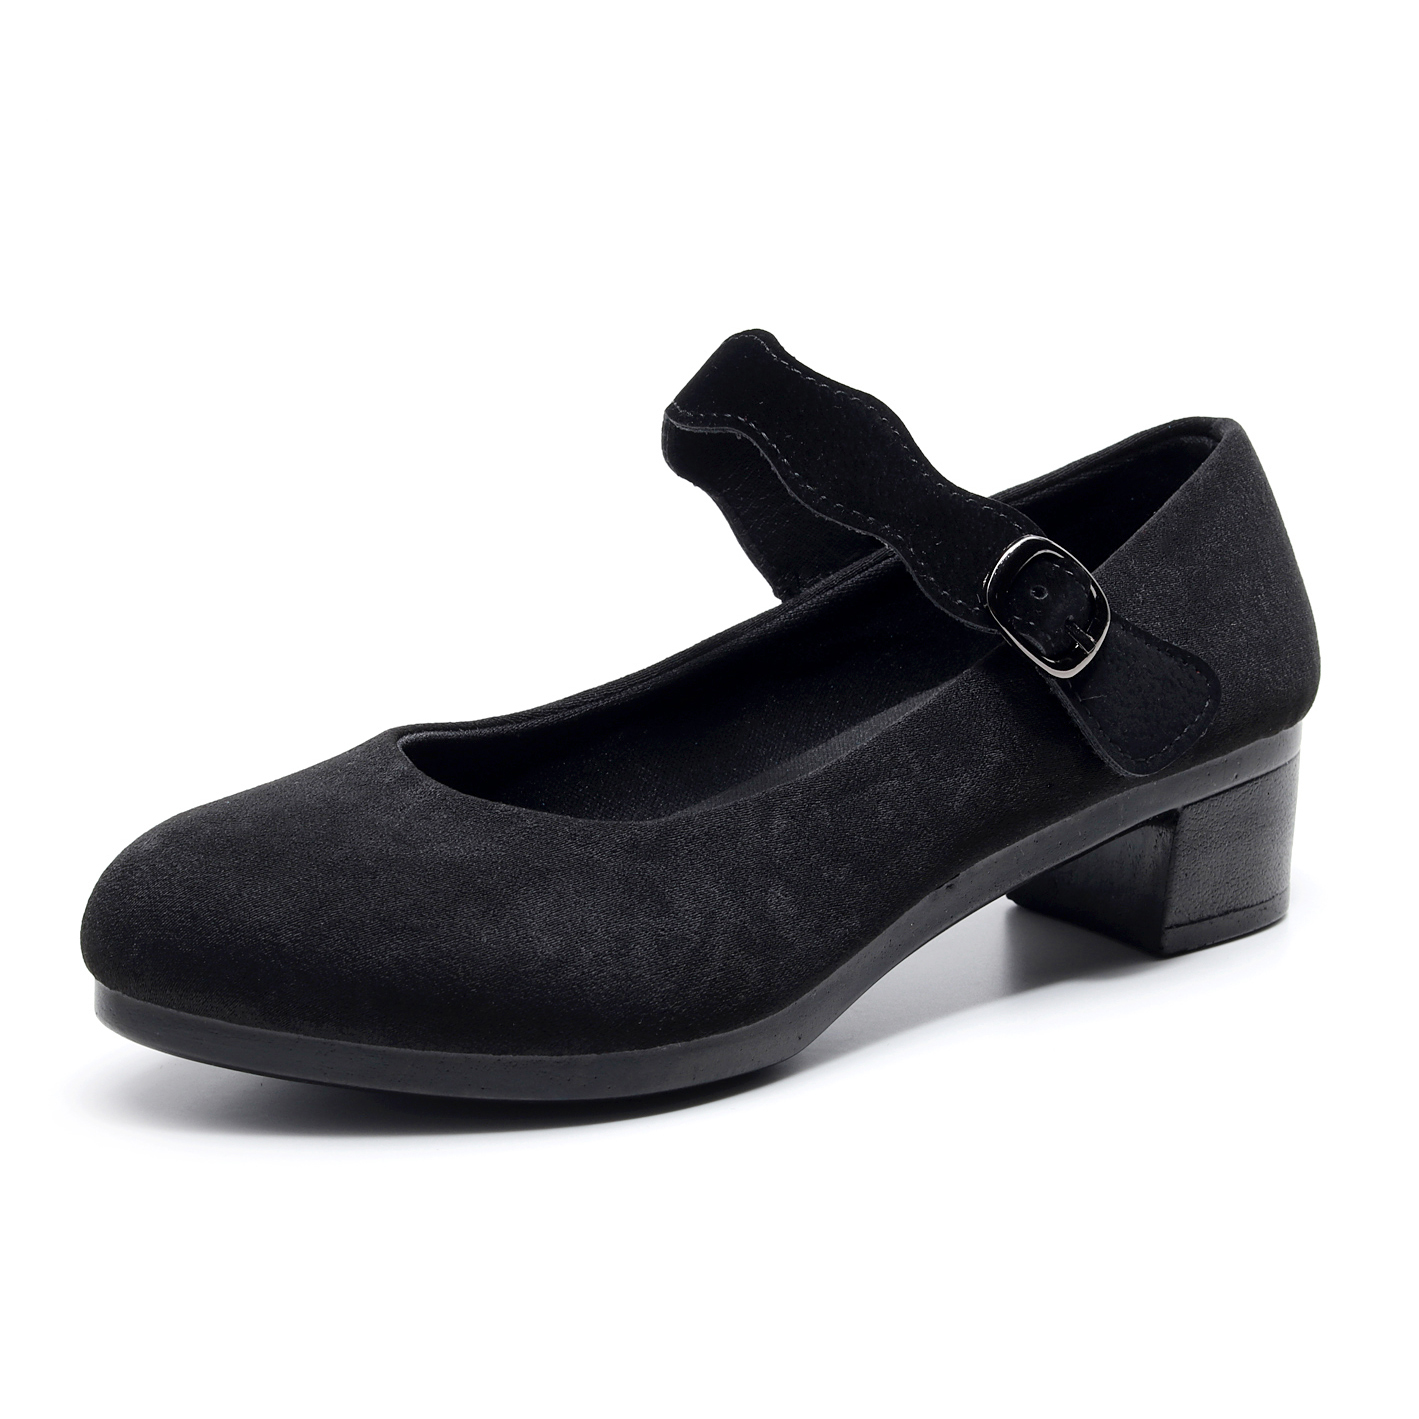 Women's Heels Shoes Women Ballet Heels Shoes Female New Work Office Black Heels Shoes Women Sweet Loafers Fashion Lace Velcro